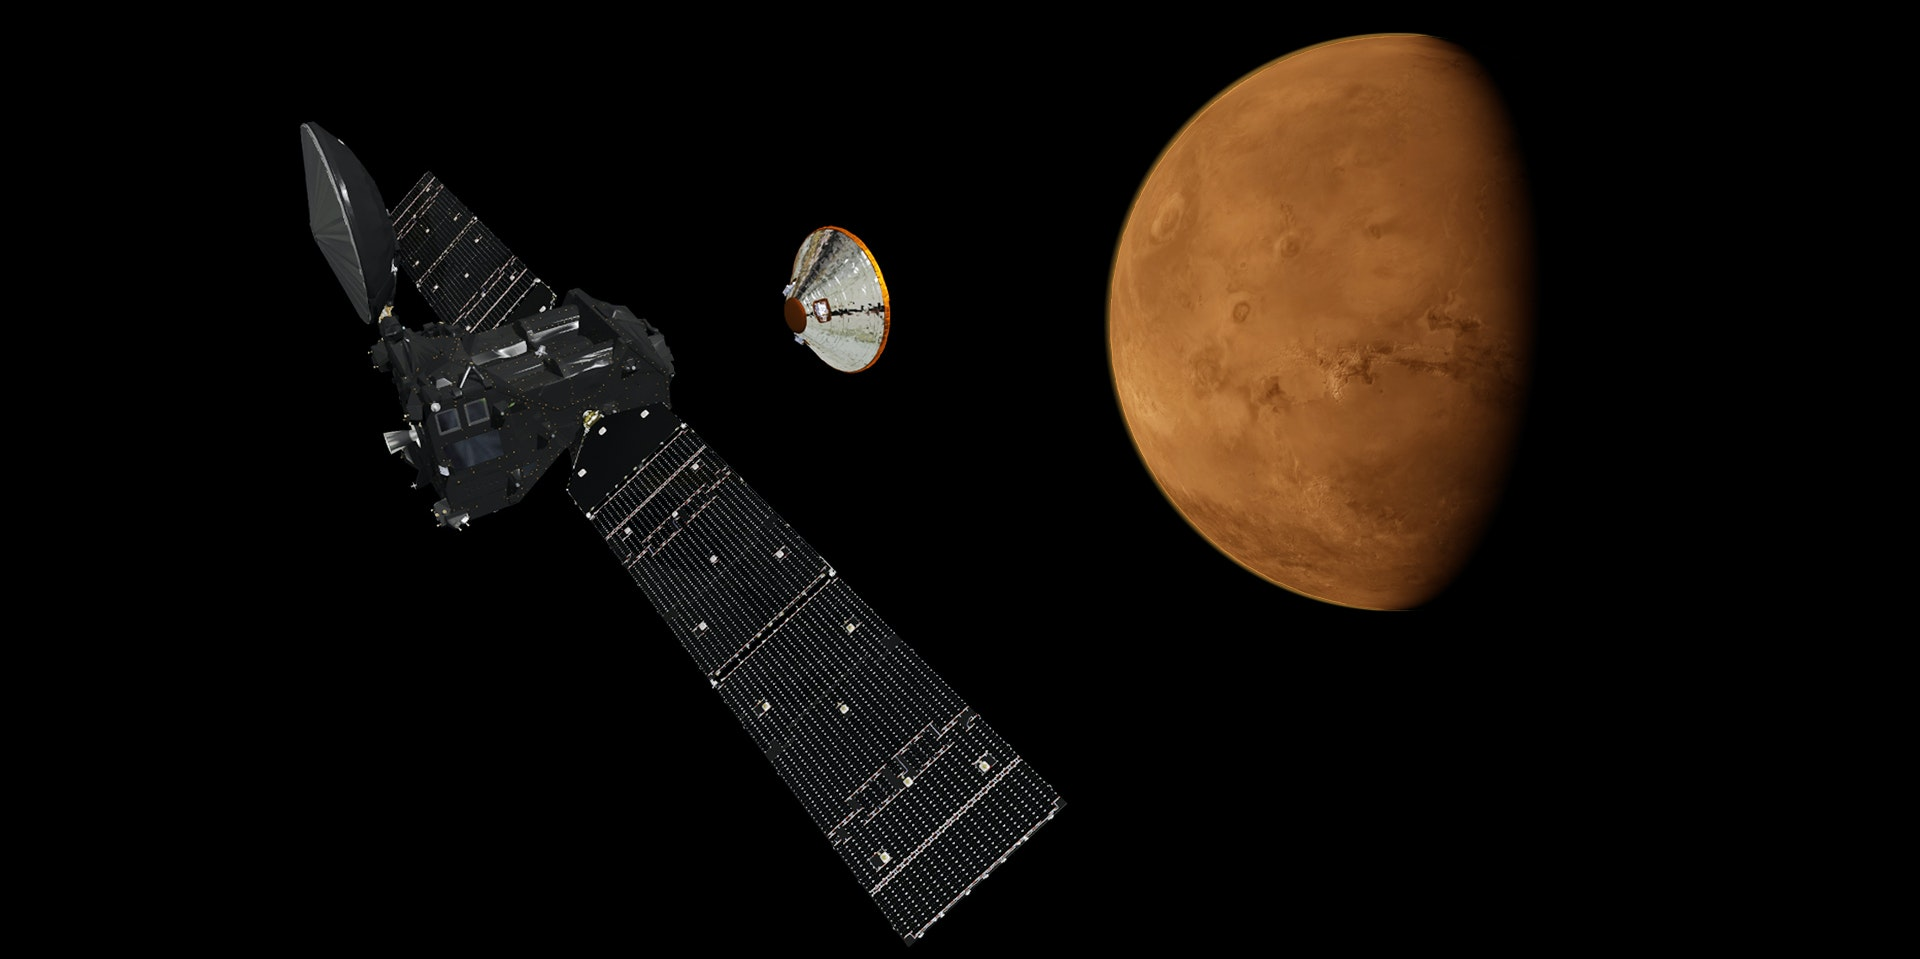 Schiaparelli successfully separated from the TGO on October 16. No word yet on if it survived the landing.